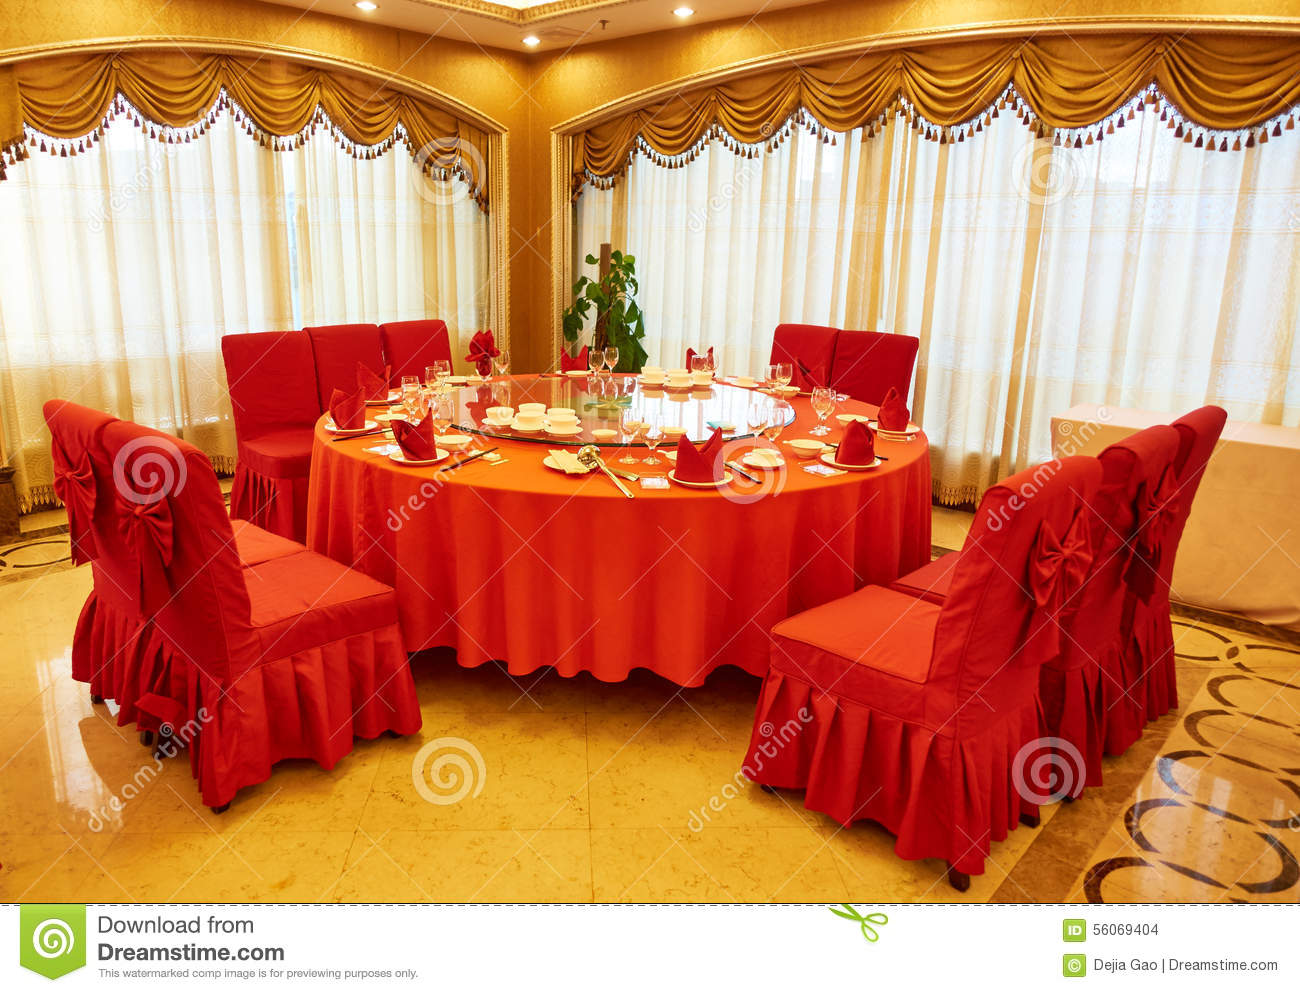 Dining room stock photo image 56069404 - Restaurant dining room chairs ...